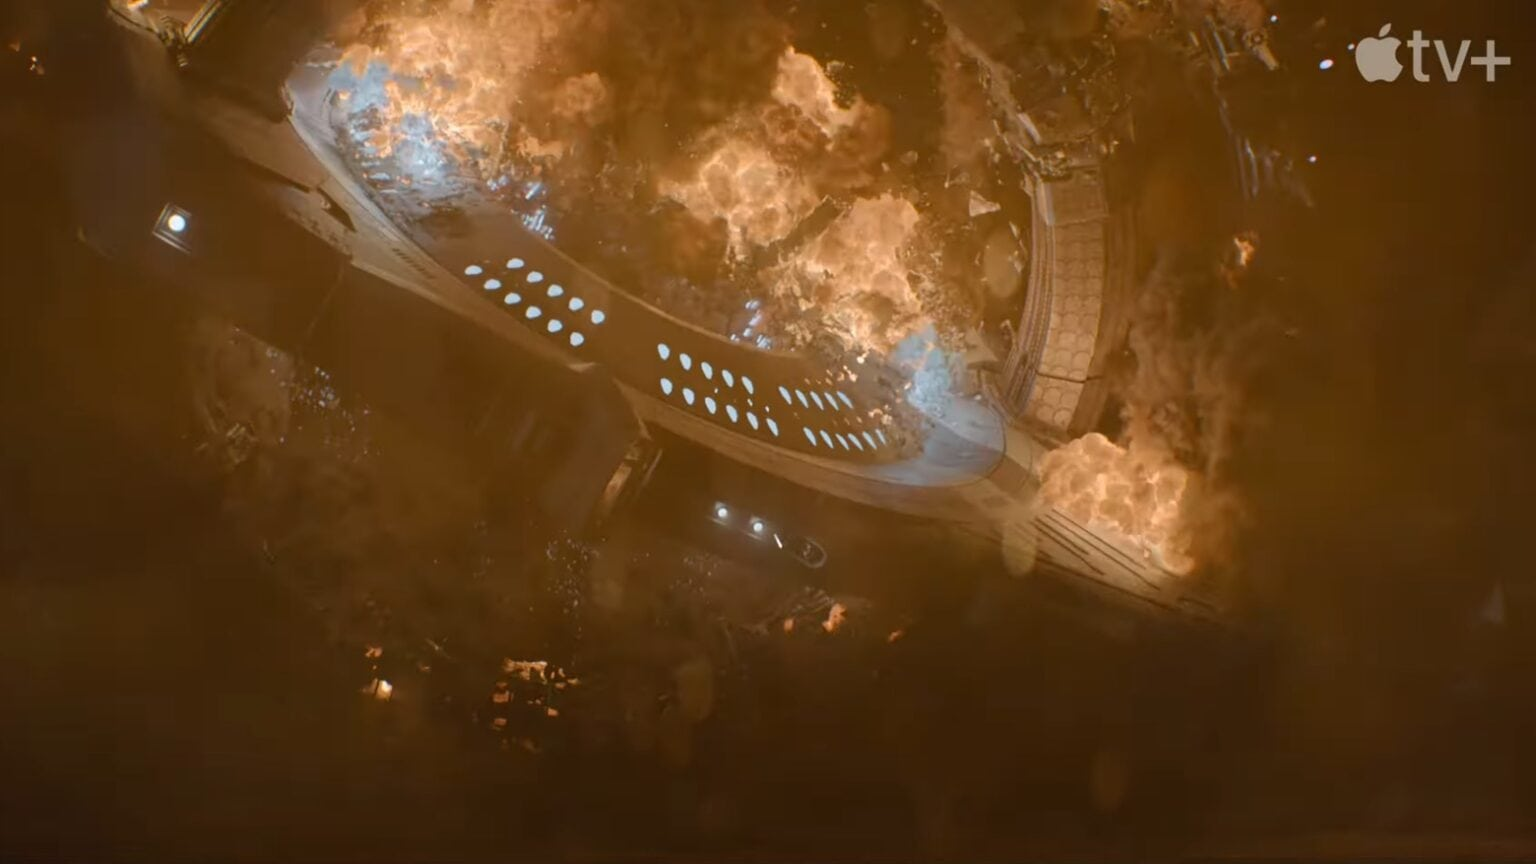 Explosion-packed Foundation trailer will get fans excited for Apple TV+ series